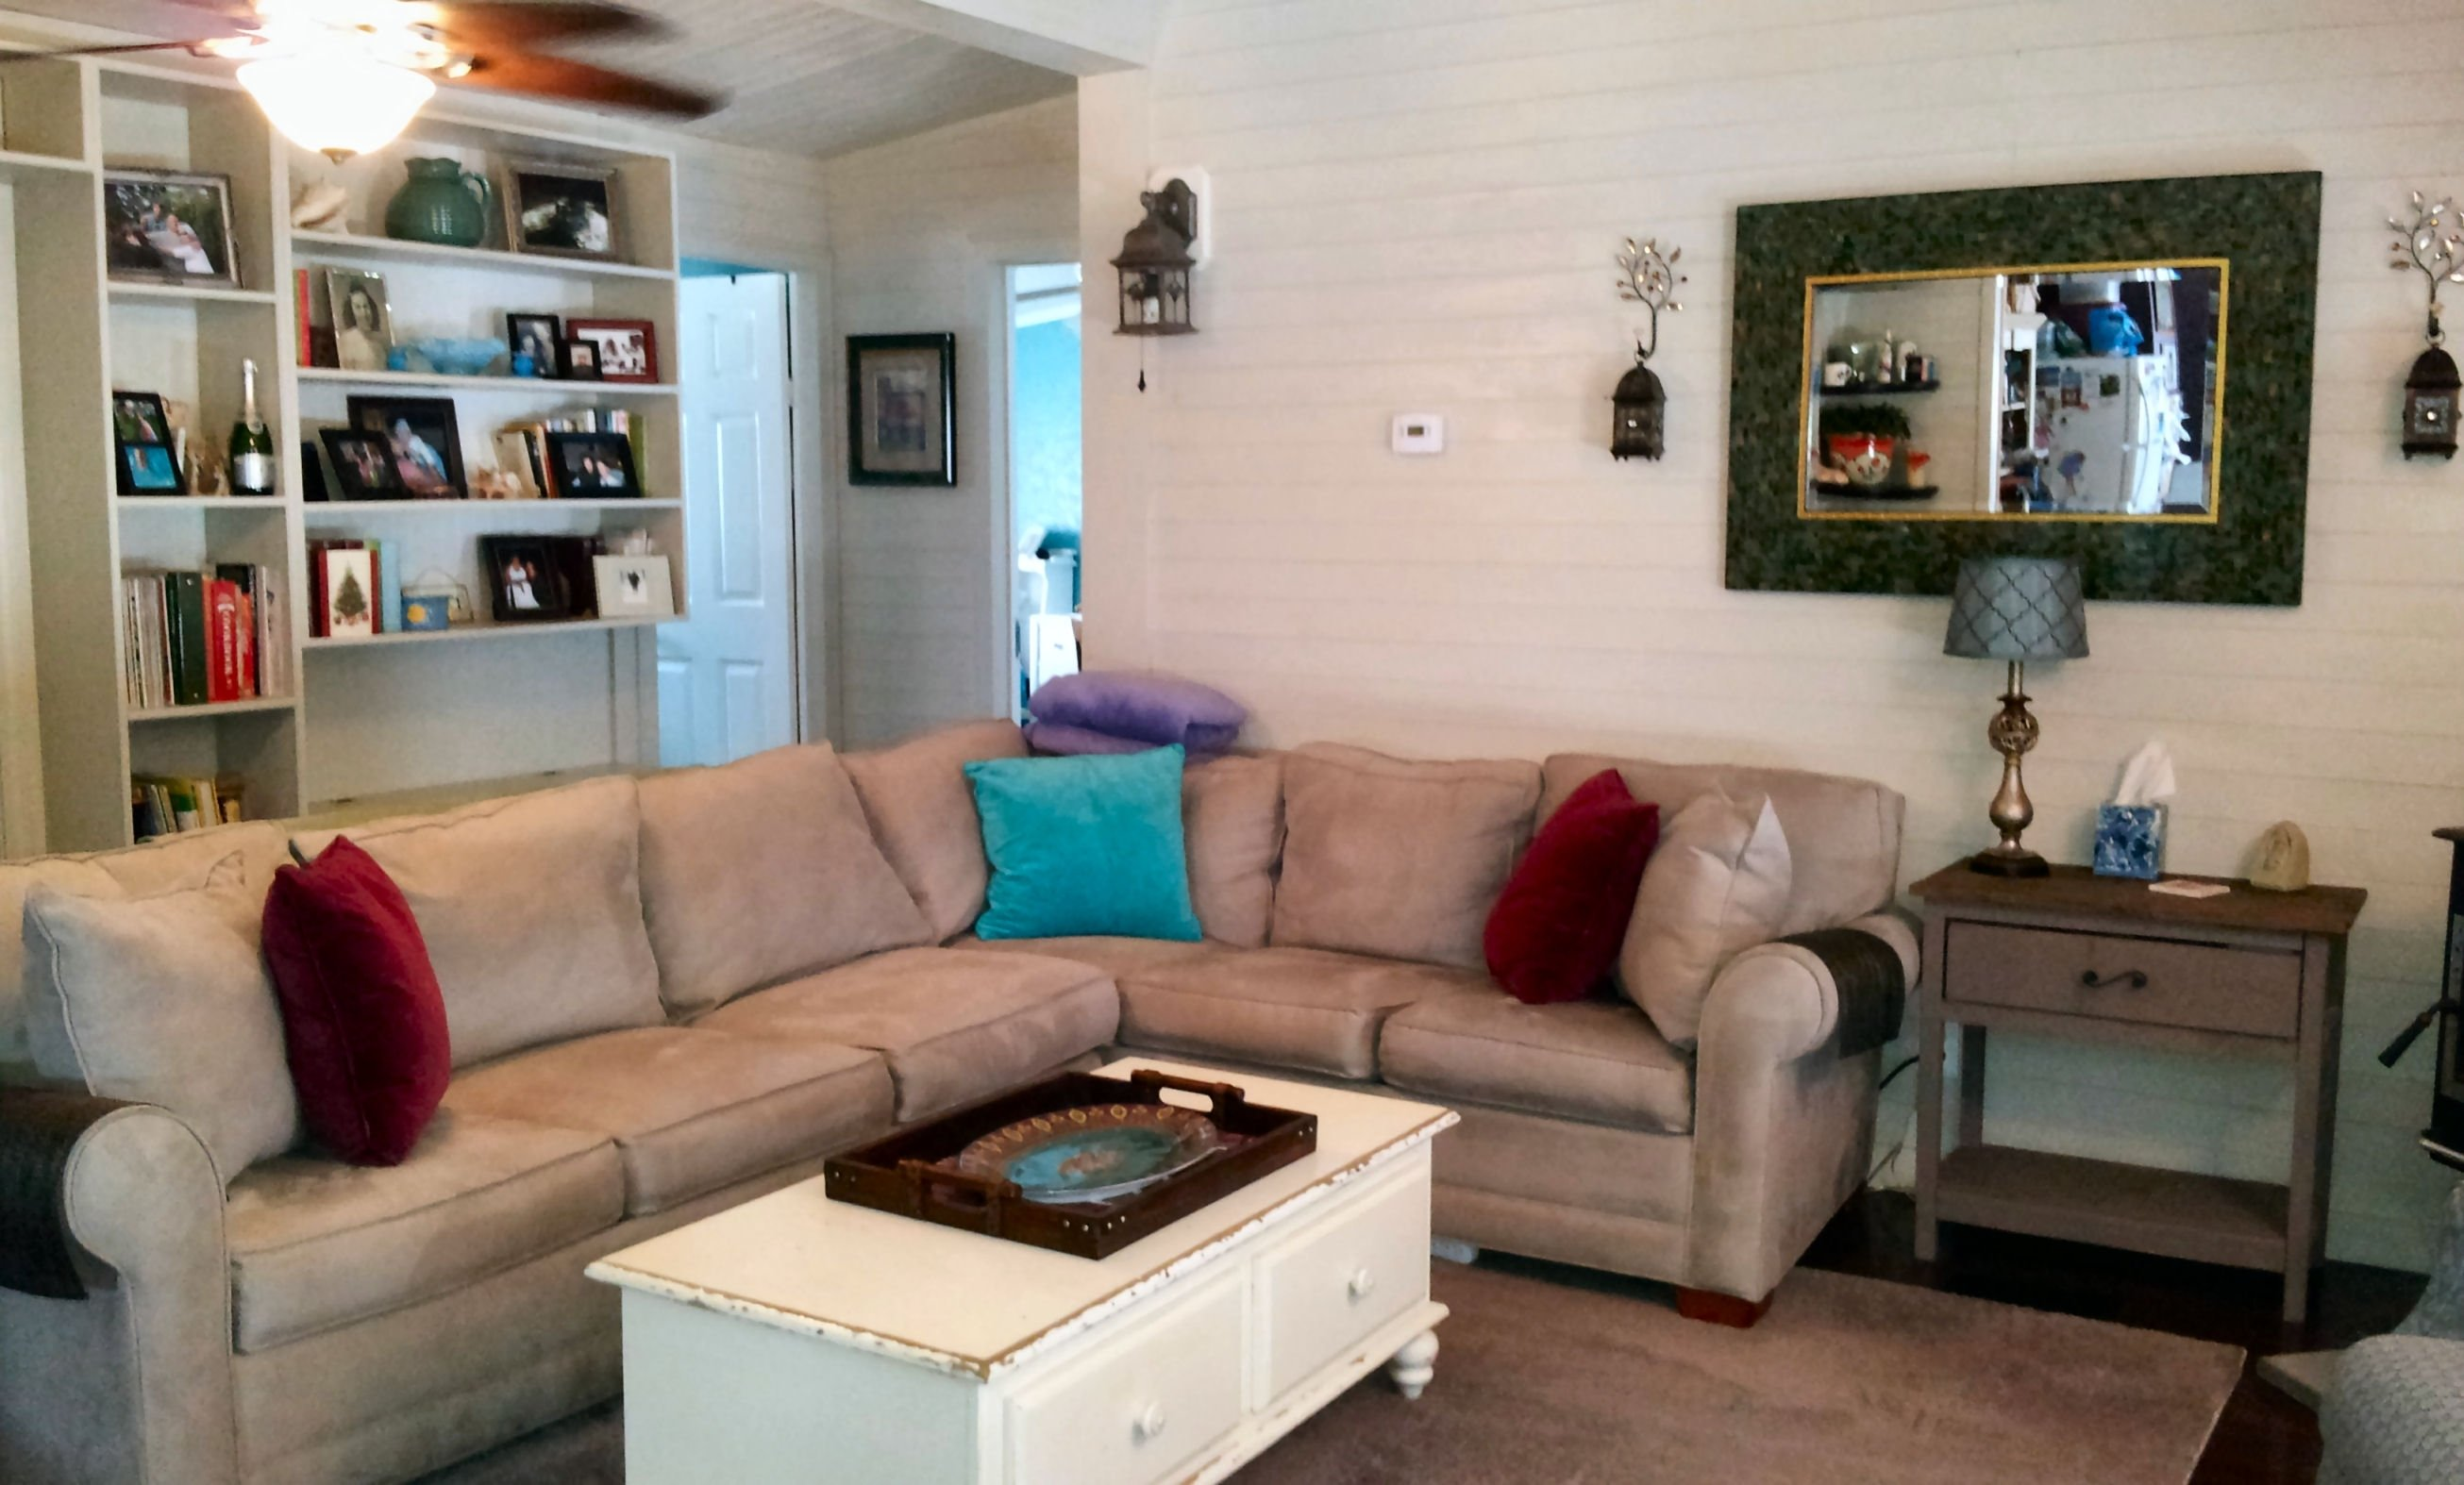 10 Nice Mobile Home Living Room Ideas mobile home living room remodel the finale my mobile home makeover 2021